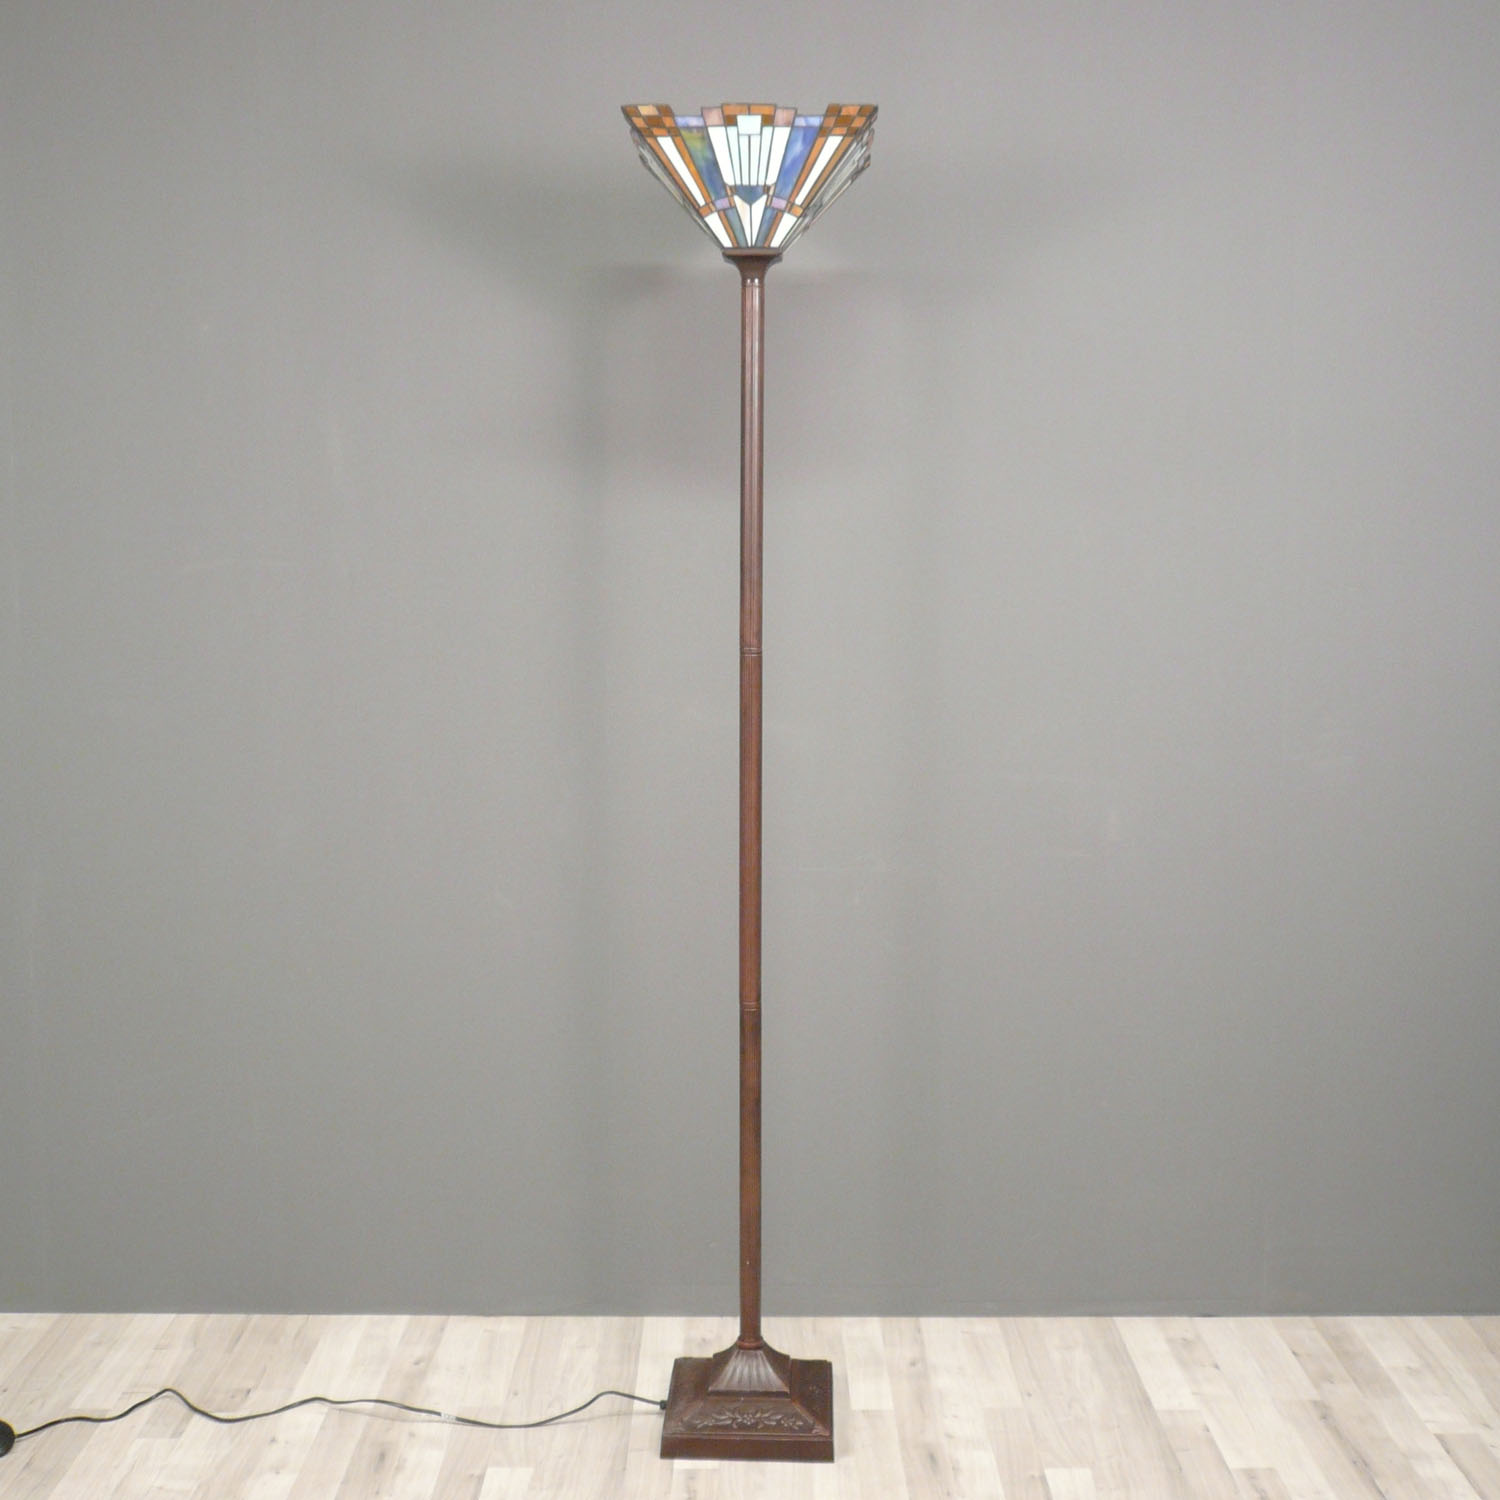 Tiffany Floor Lamp Art Deco Lighting Suspension